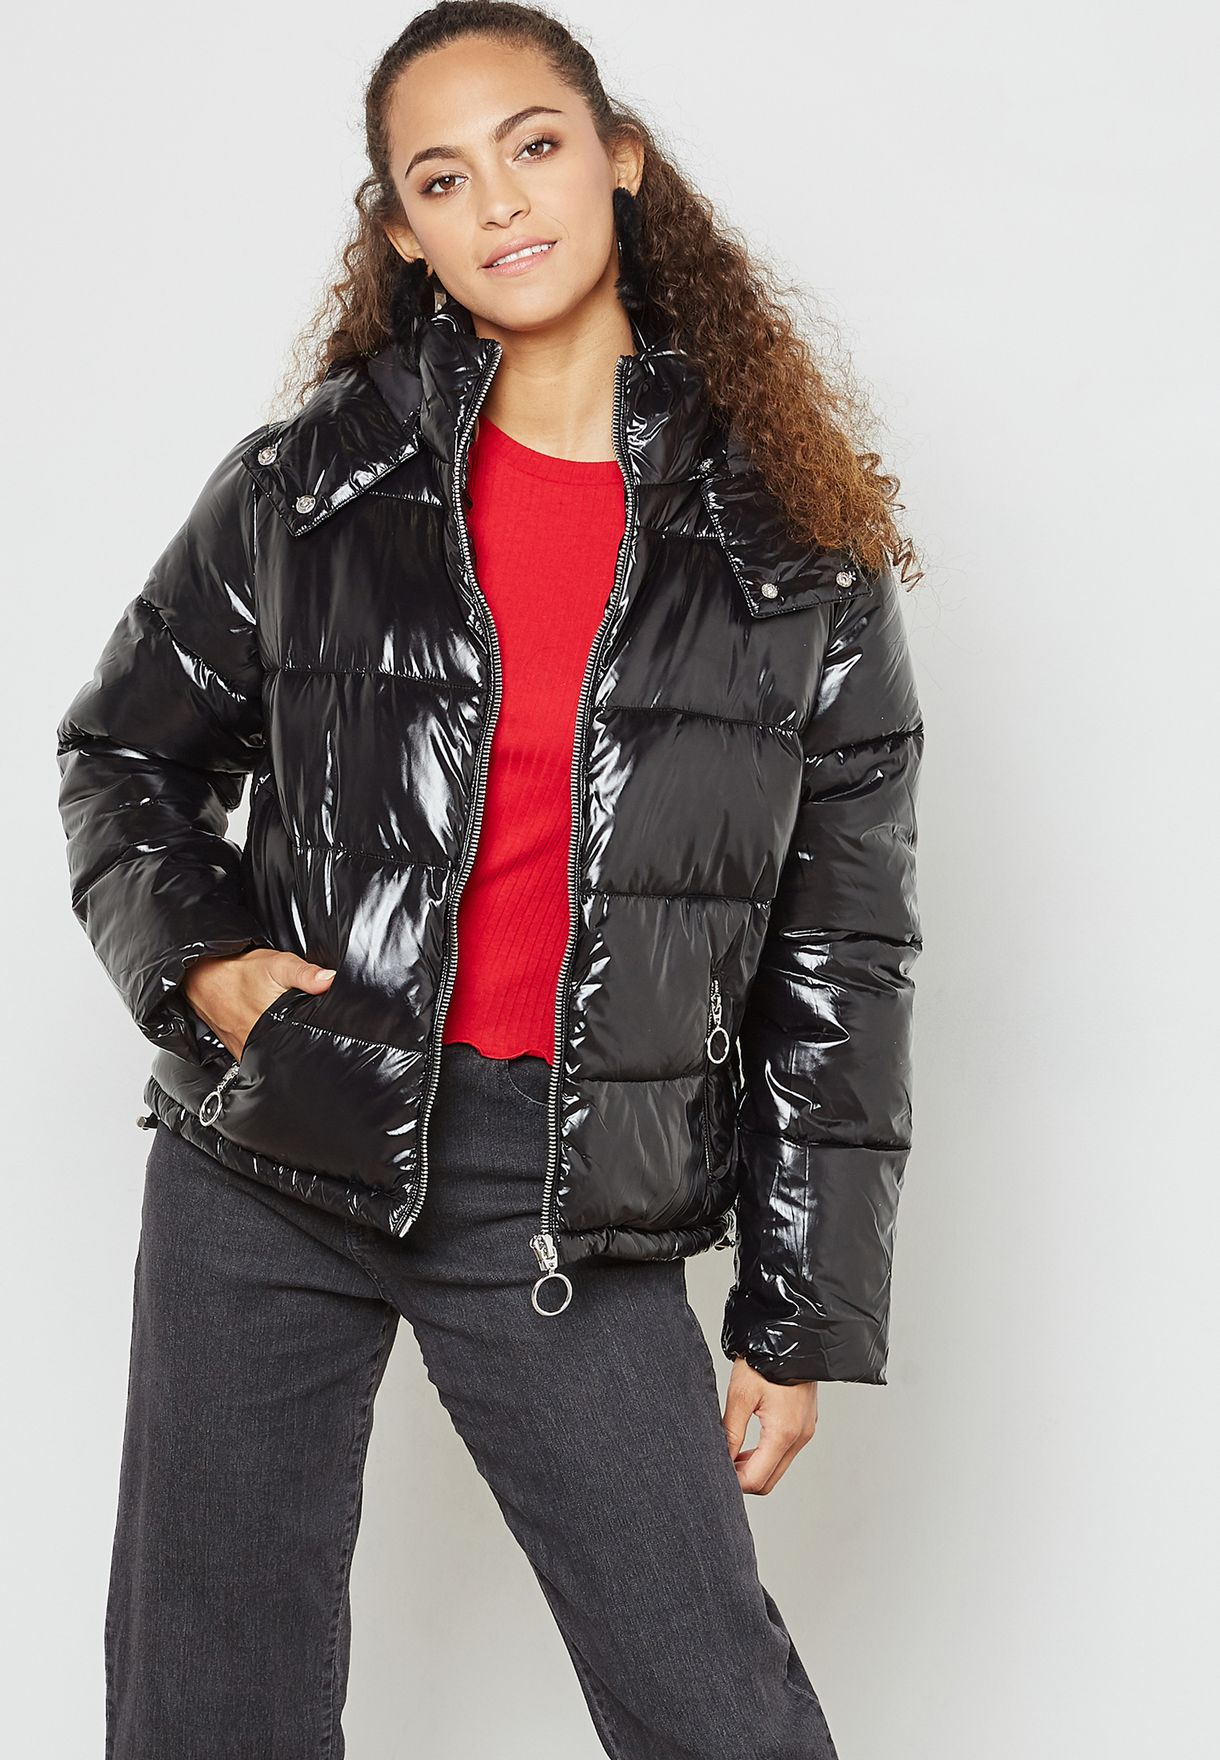 78ded82e7f6 Miss Selfridge Women 23p30vblk Puffer For Shop Black Jacket Quilted  fdx8wdqz5